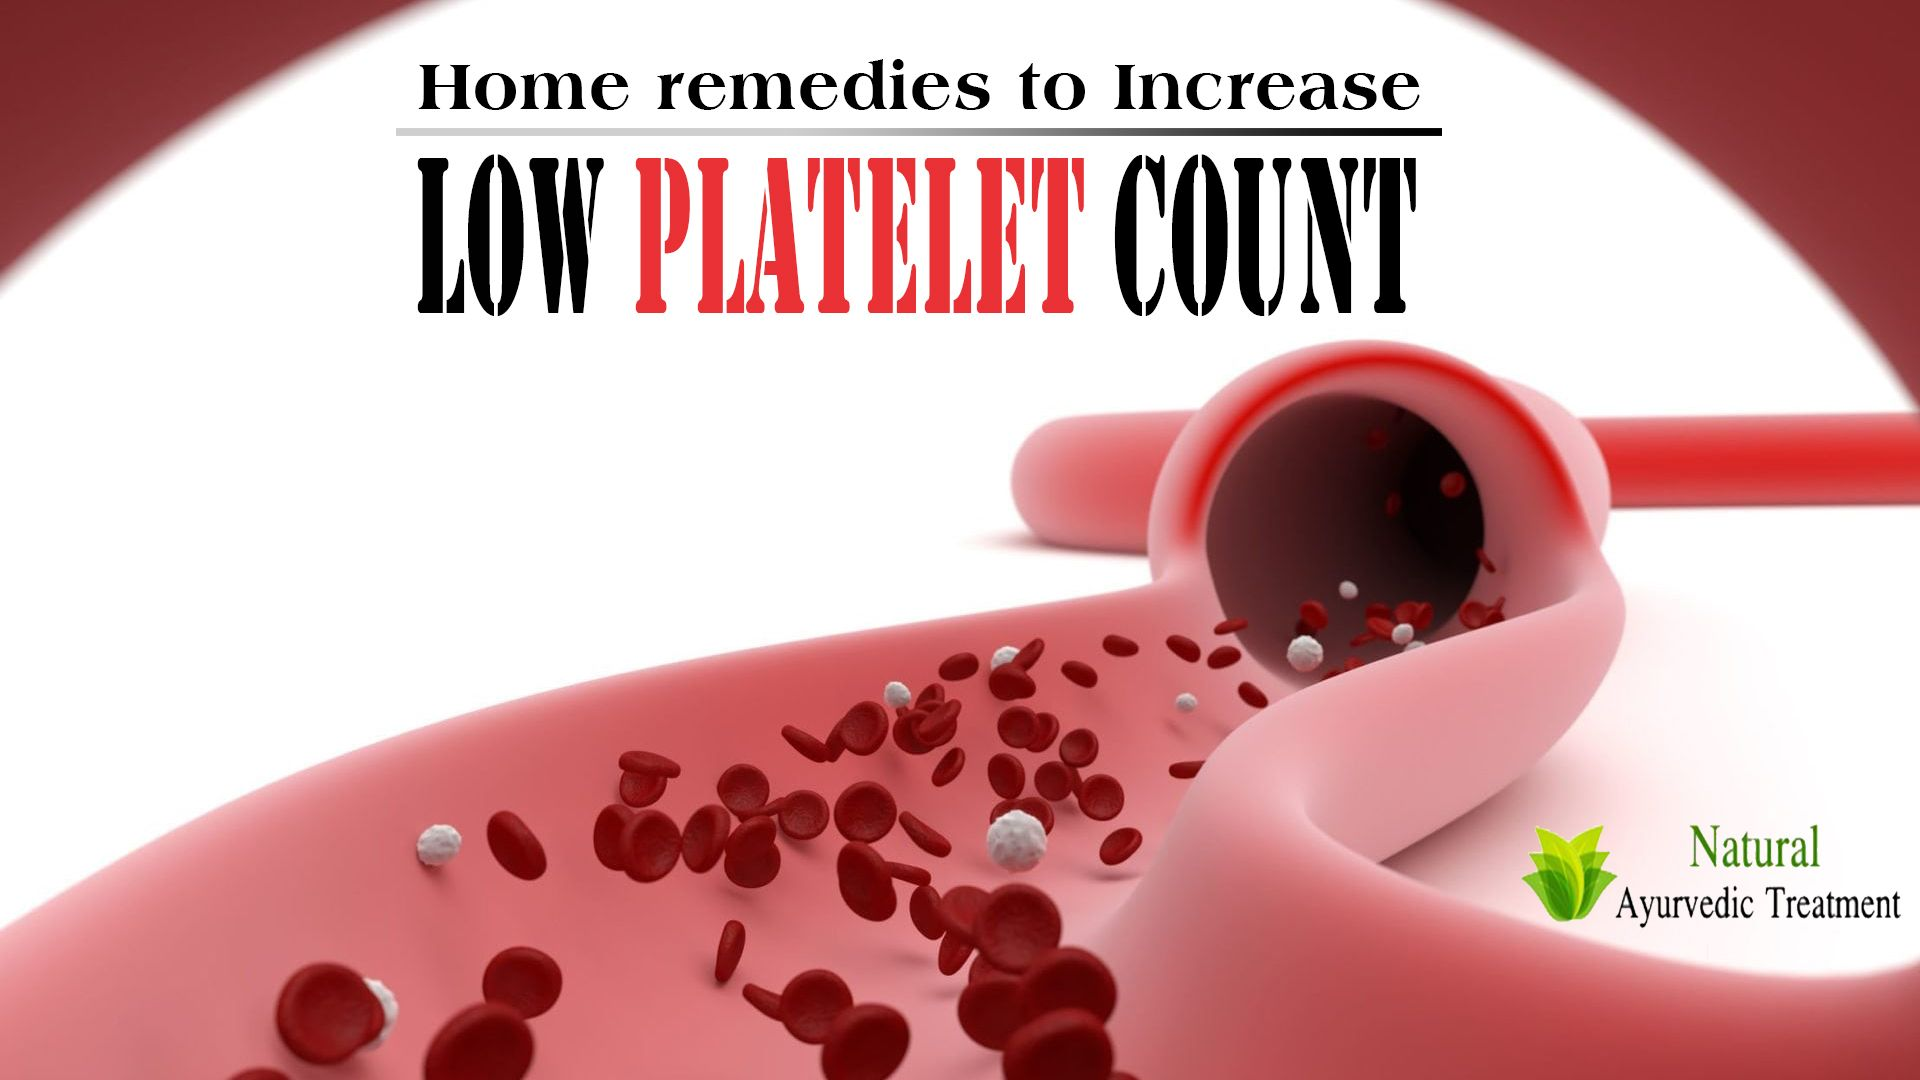 Best Home Remedies to Increase Low Platelet Count